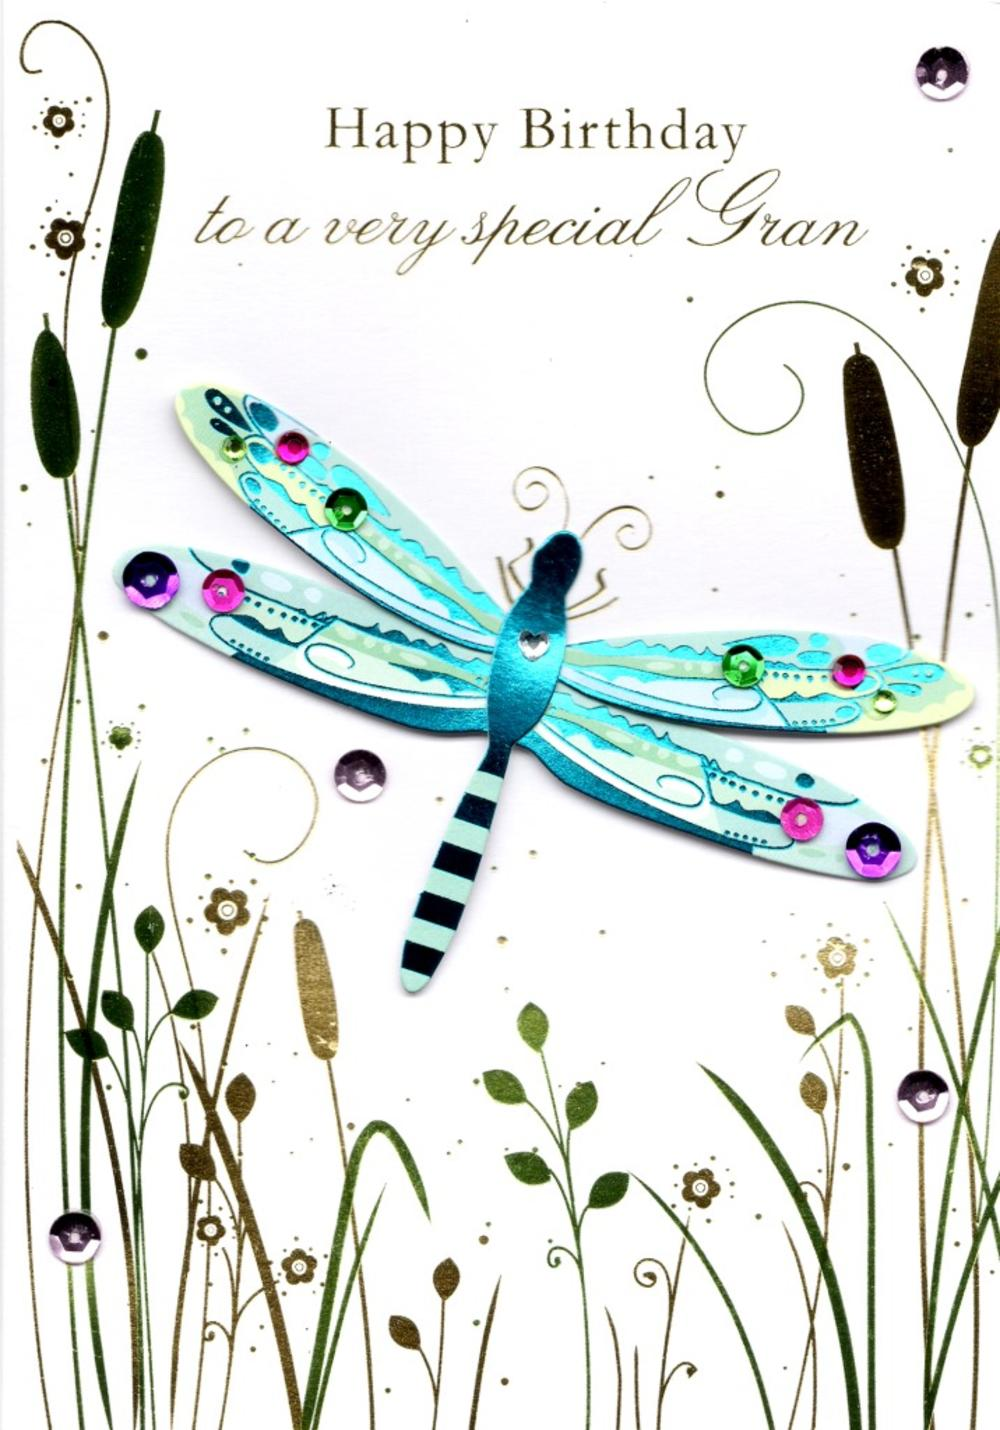 Special Gran Handmade Birthday Greeting Card Cards